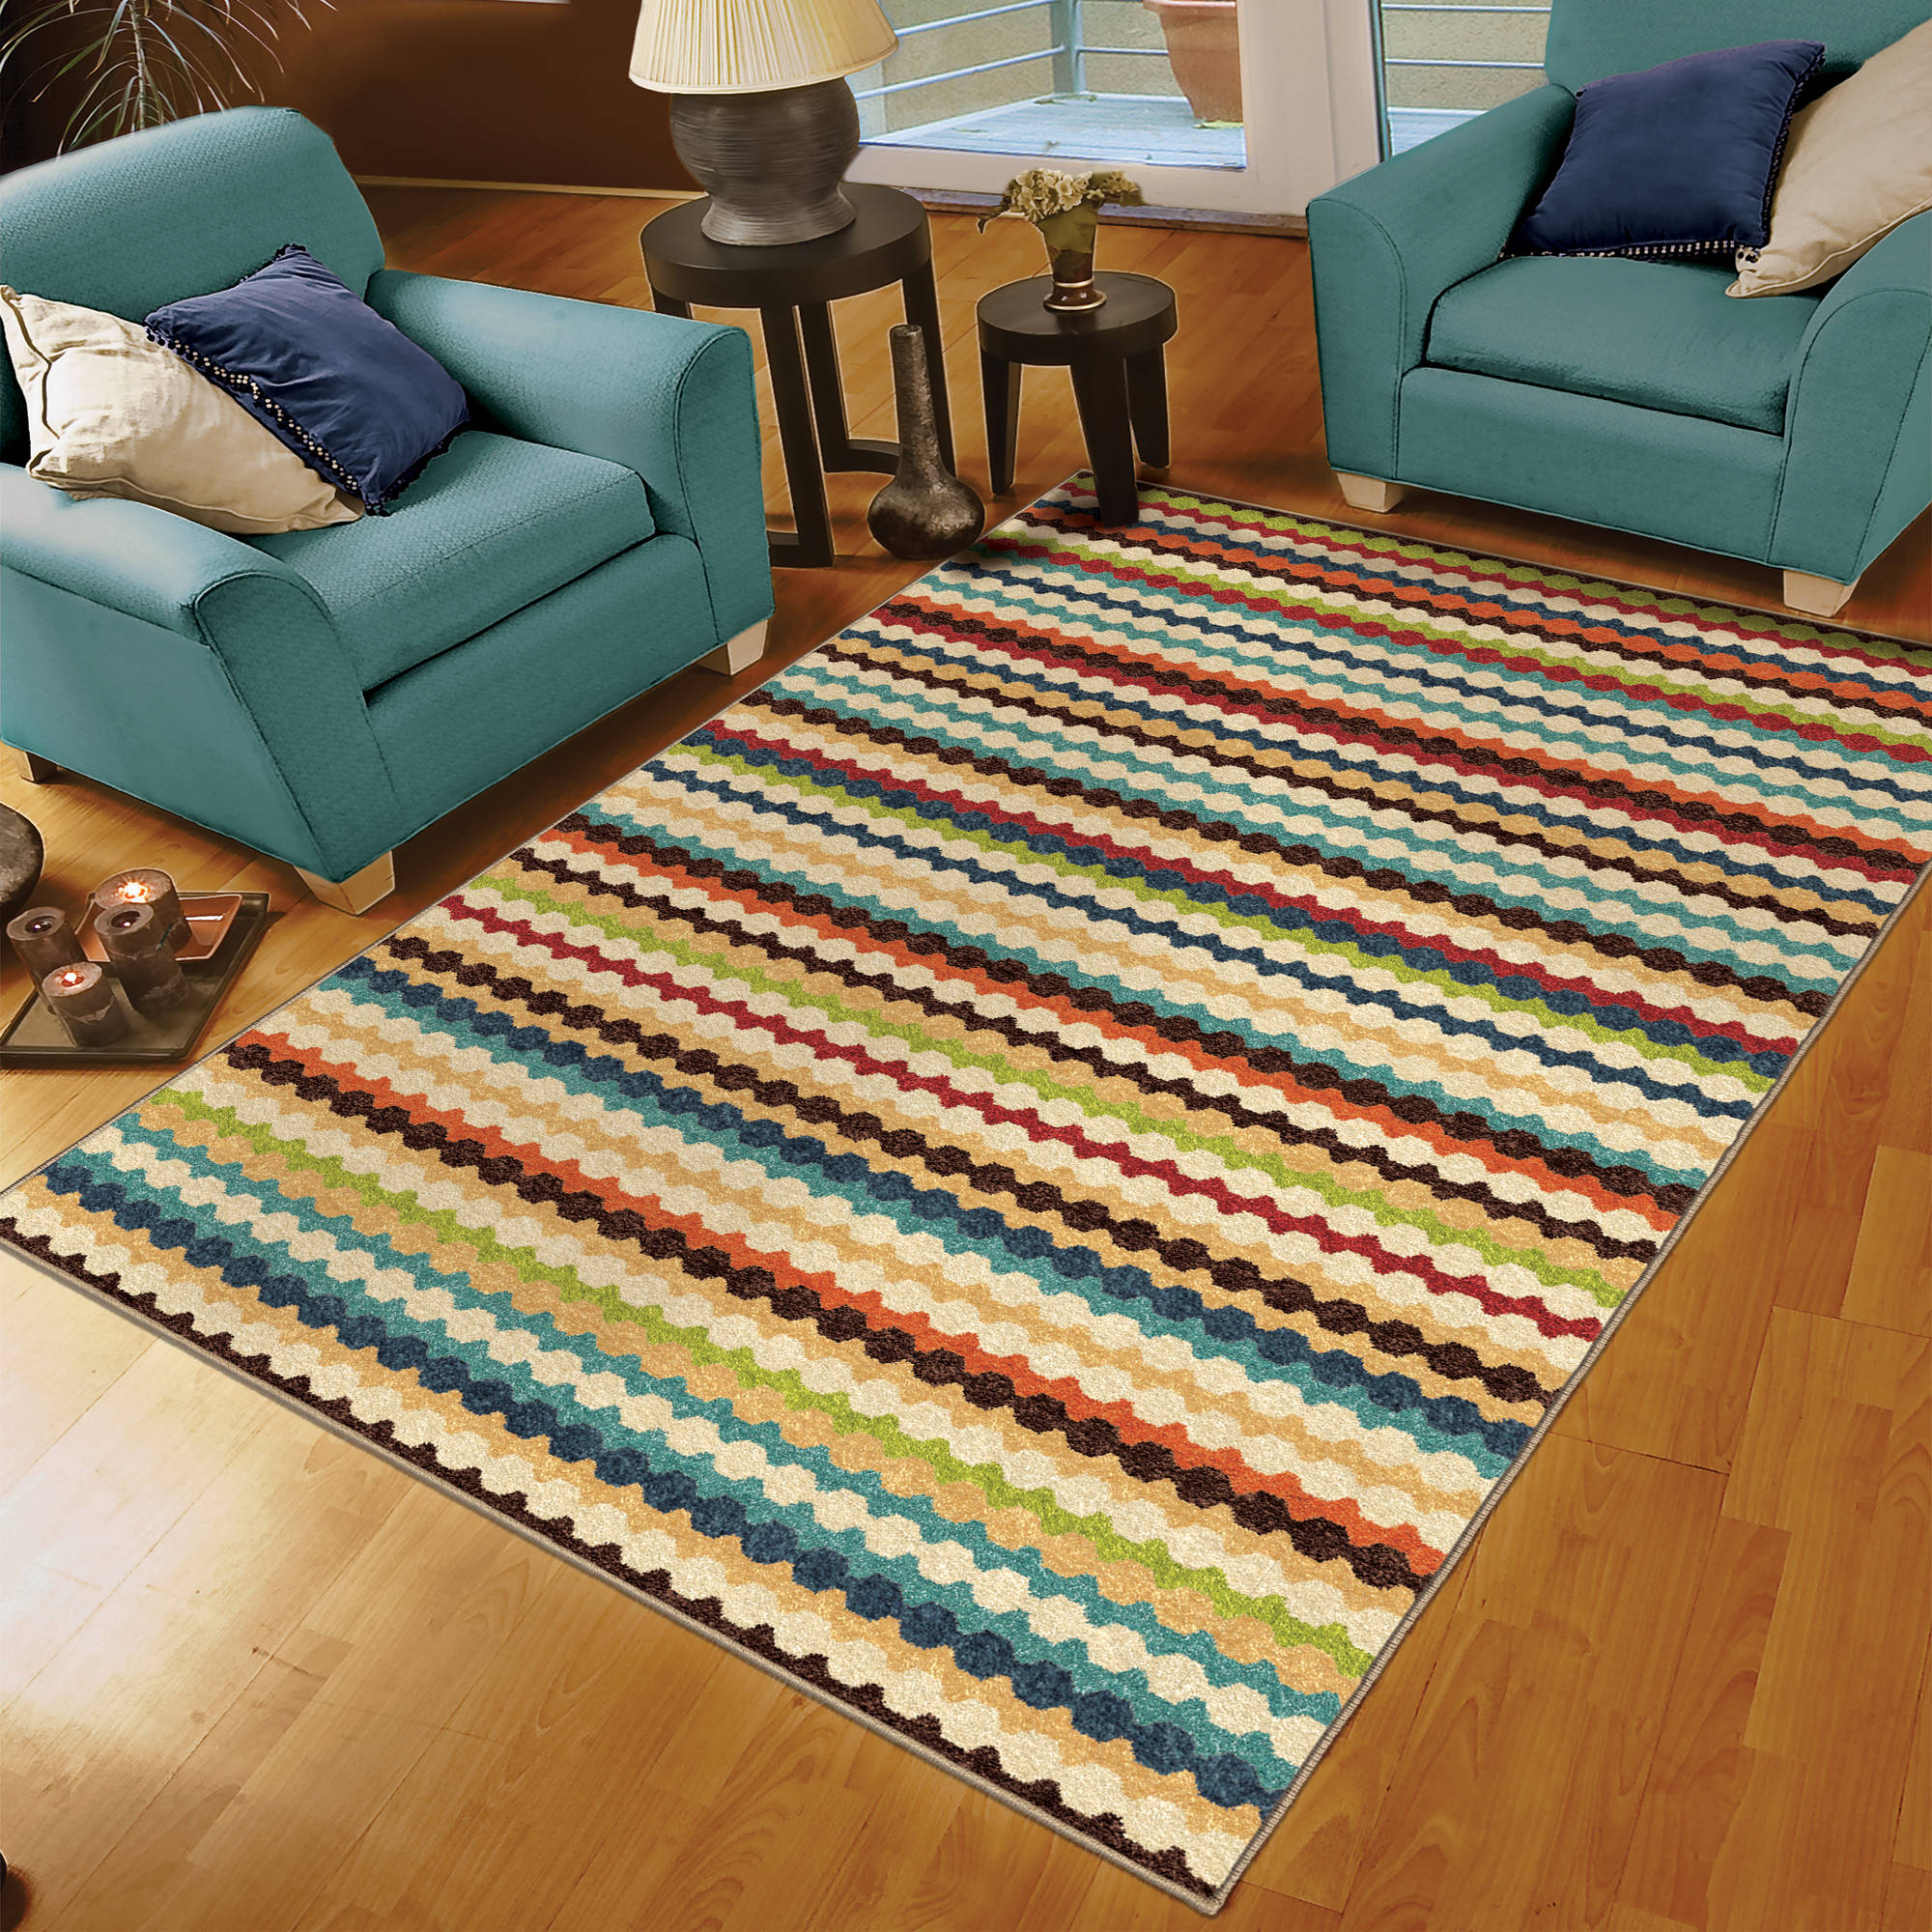 We've shopped the web for you, pulling tons of styles deals for Walmart rugs together in one place. Don't miss out on the savings!